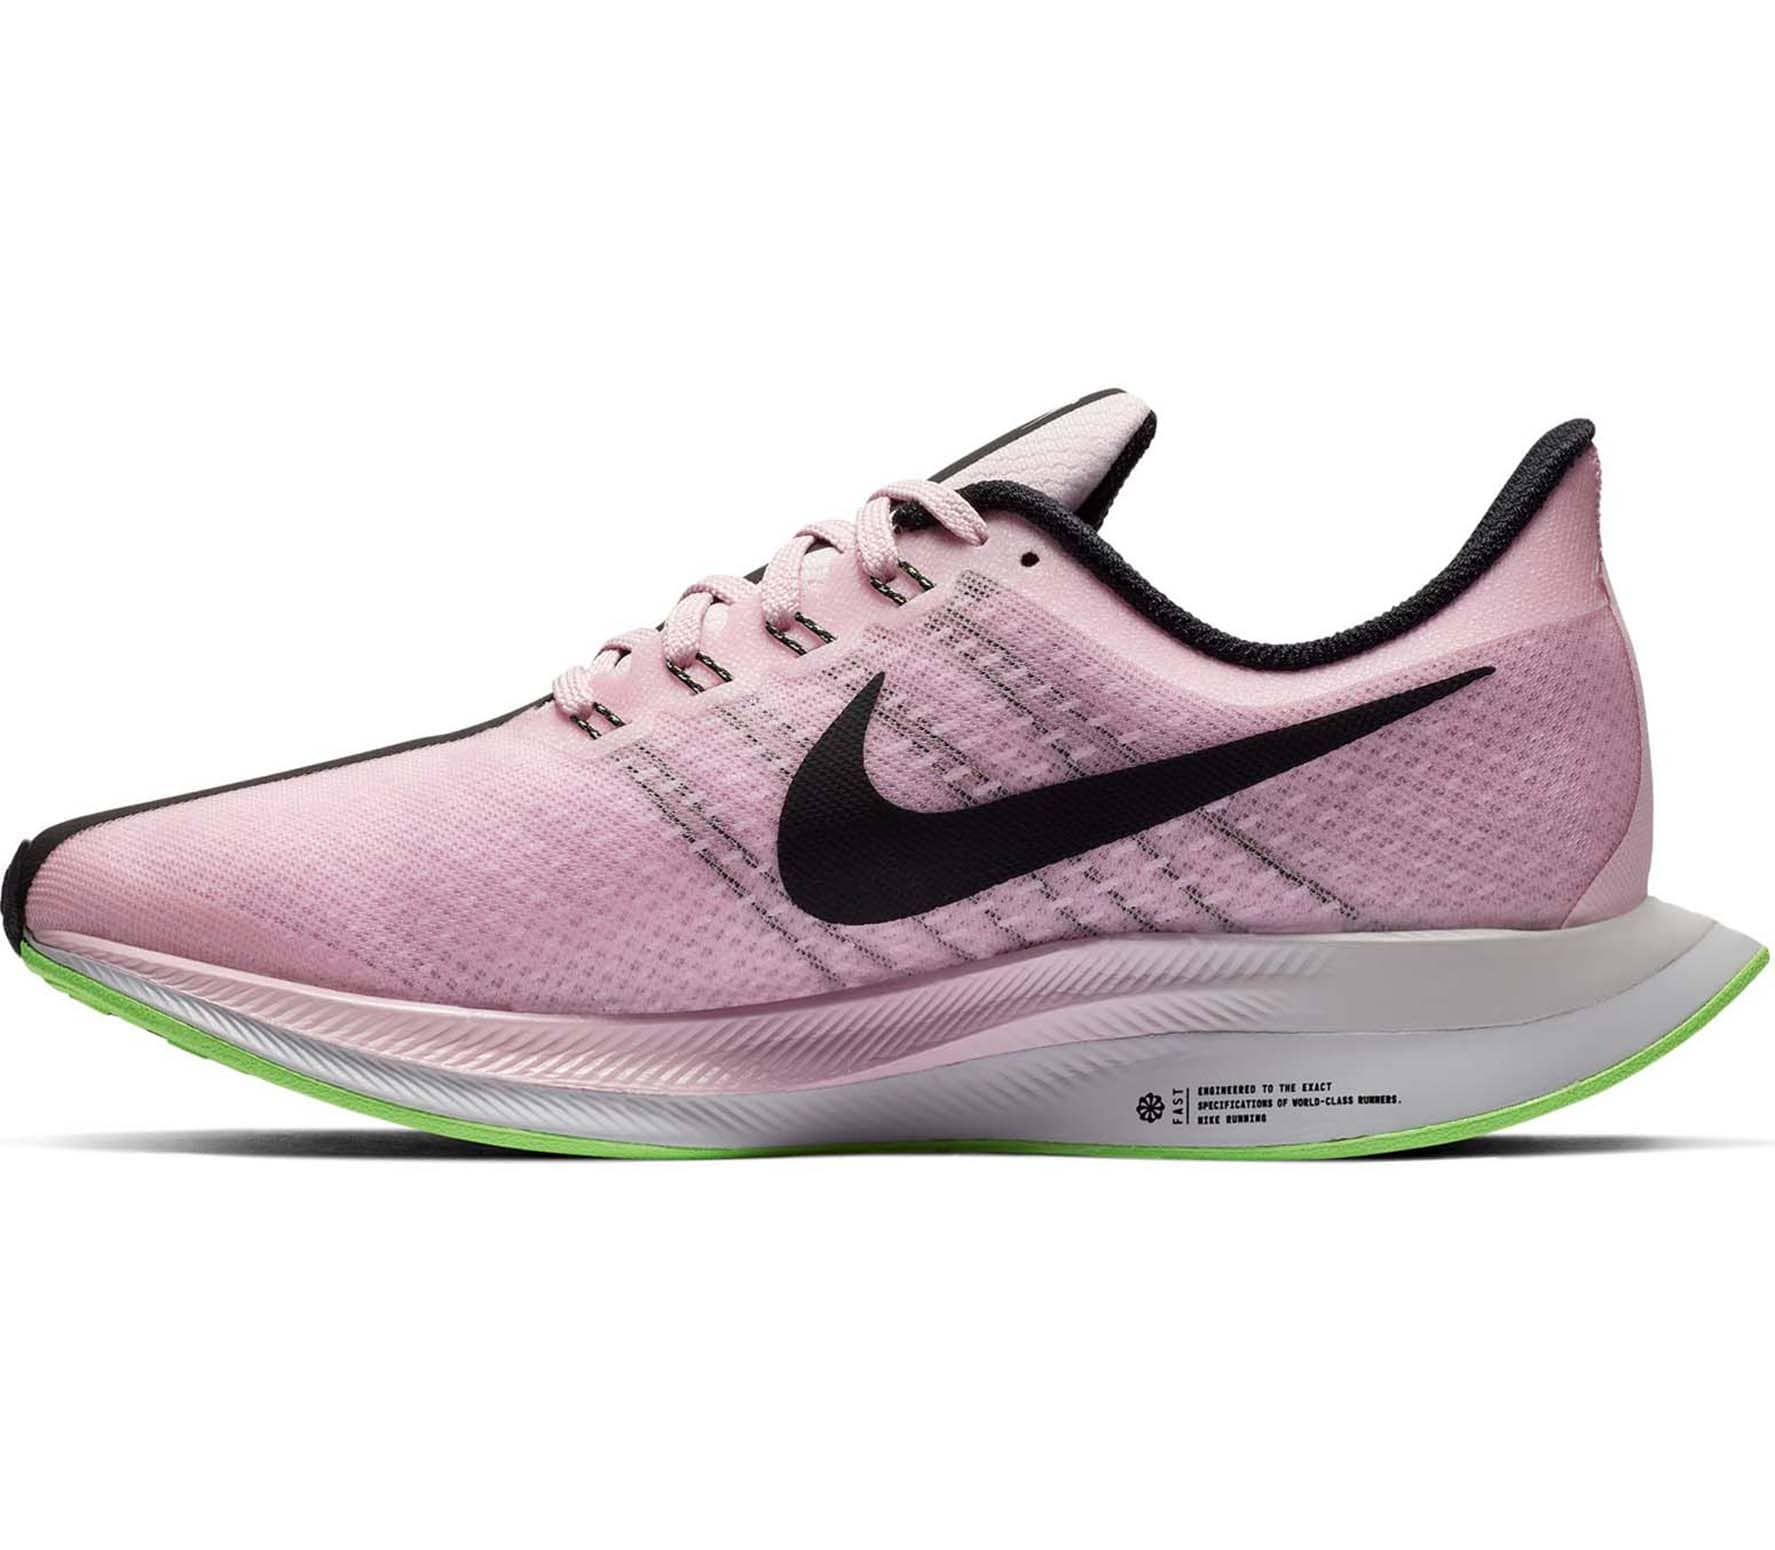 low priced 4867d a0c3a Nike Zoom Pegasus Turbo Women Running Shoes pink